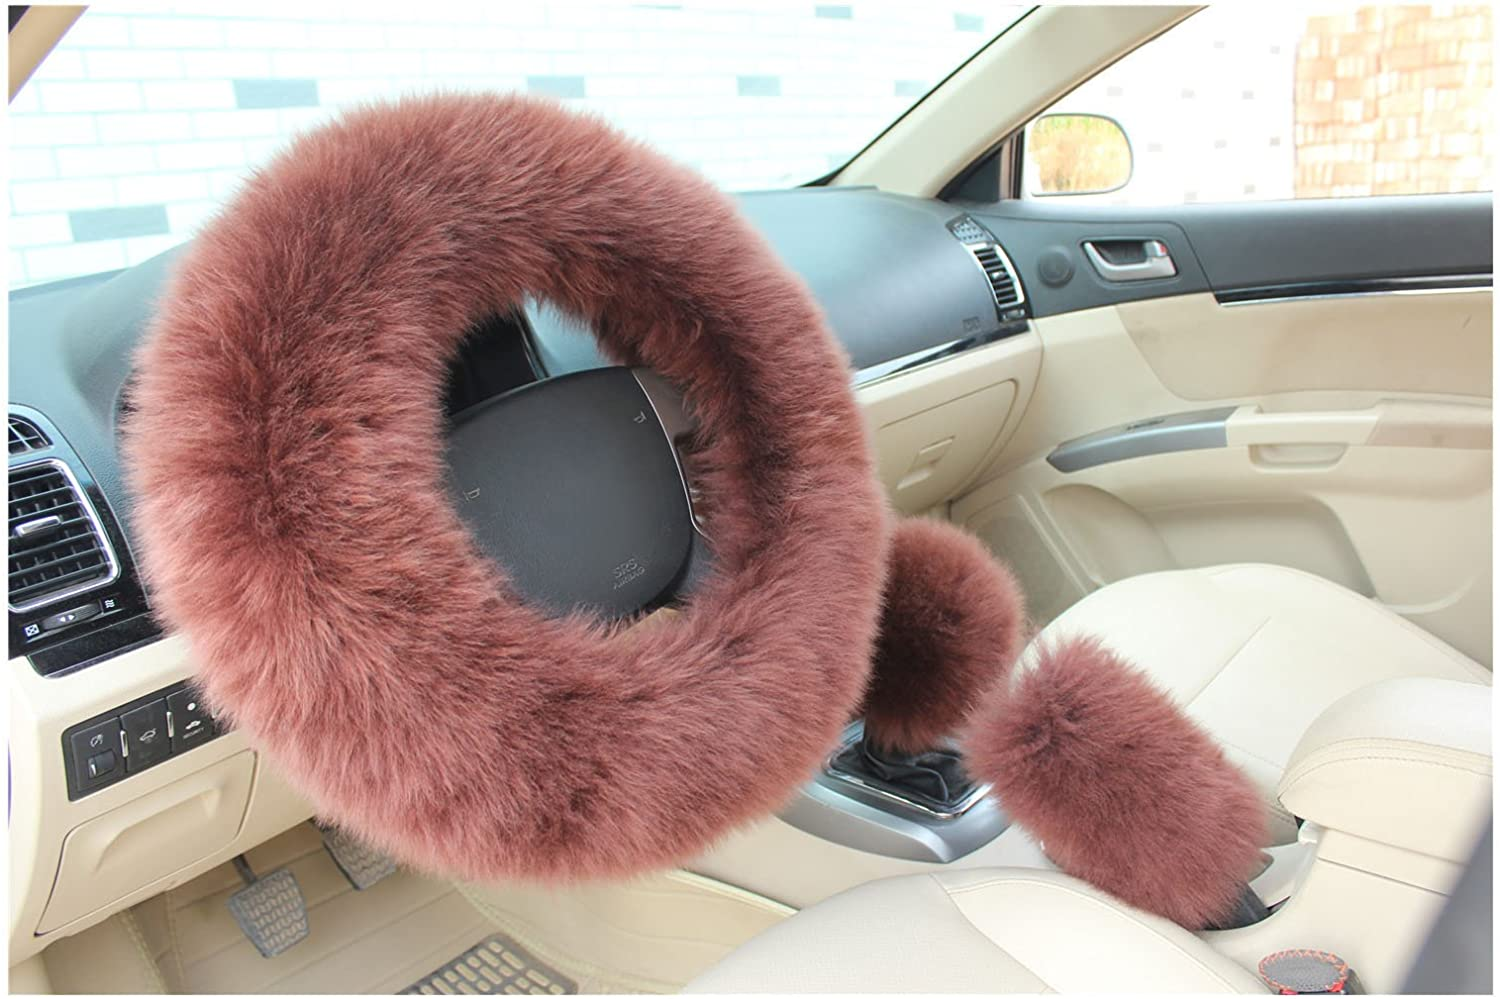 BELLESIE 3pcs 1 Set Soft Fluffy Plush Australian Wool Car Steering Wheel Cover with Handbrake Cover /& Gear Shift Cover for 14.96 X 14.96 Steeling Wheel in Diameter